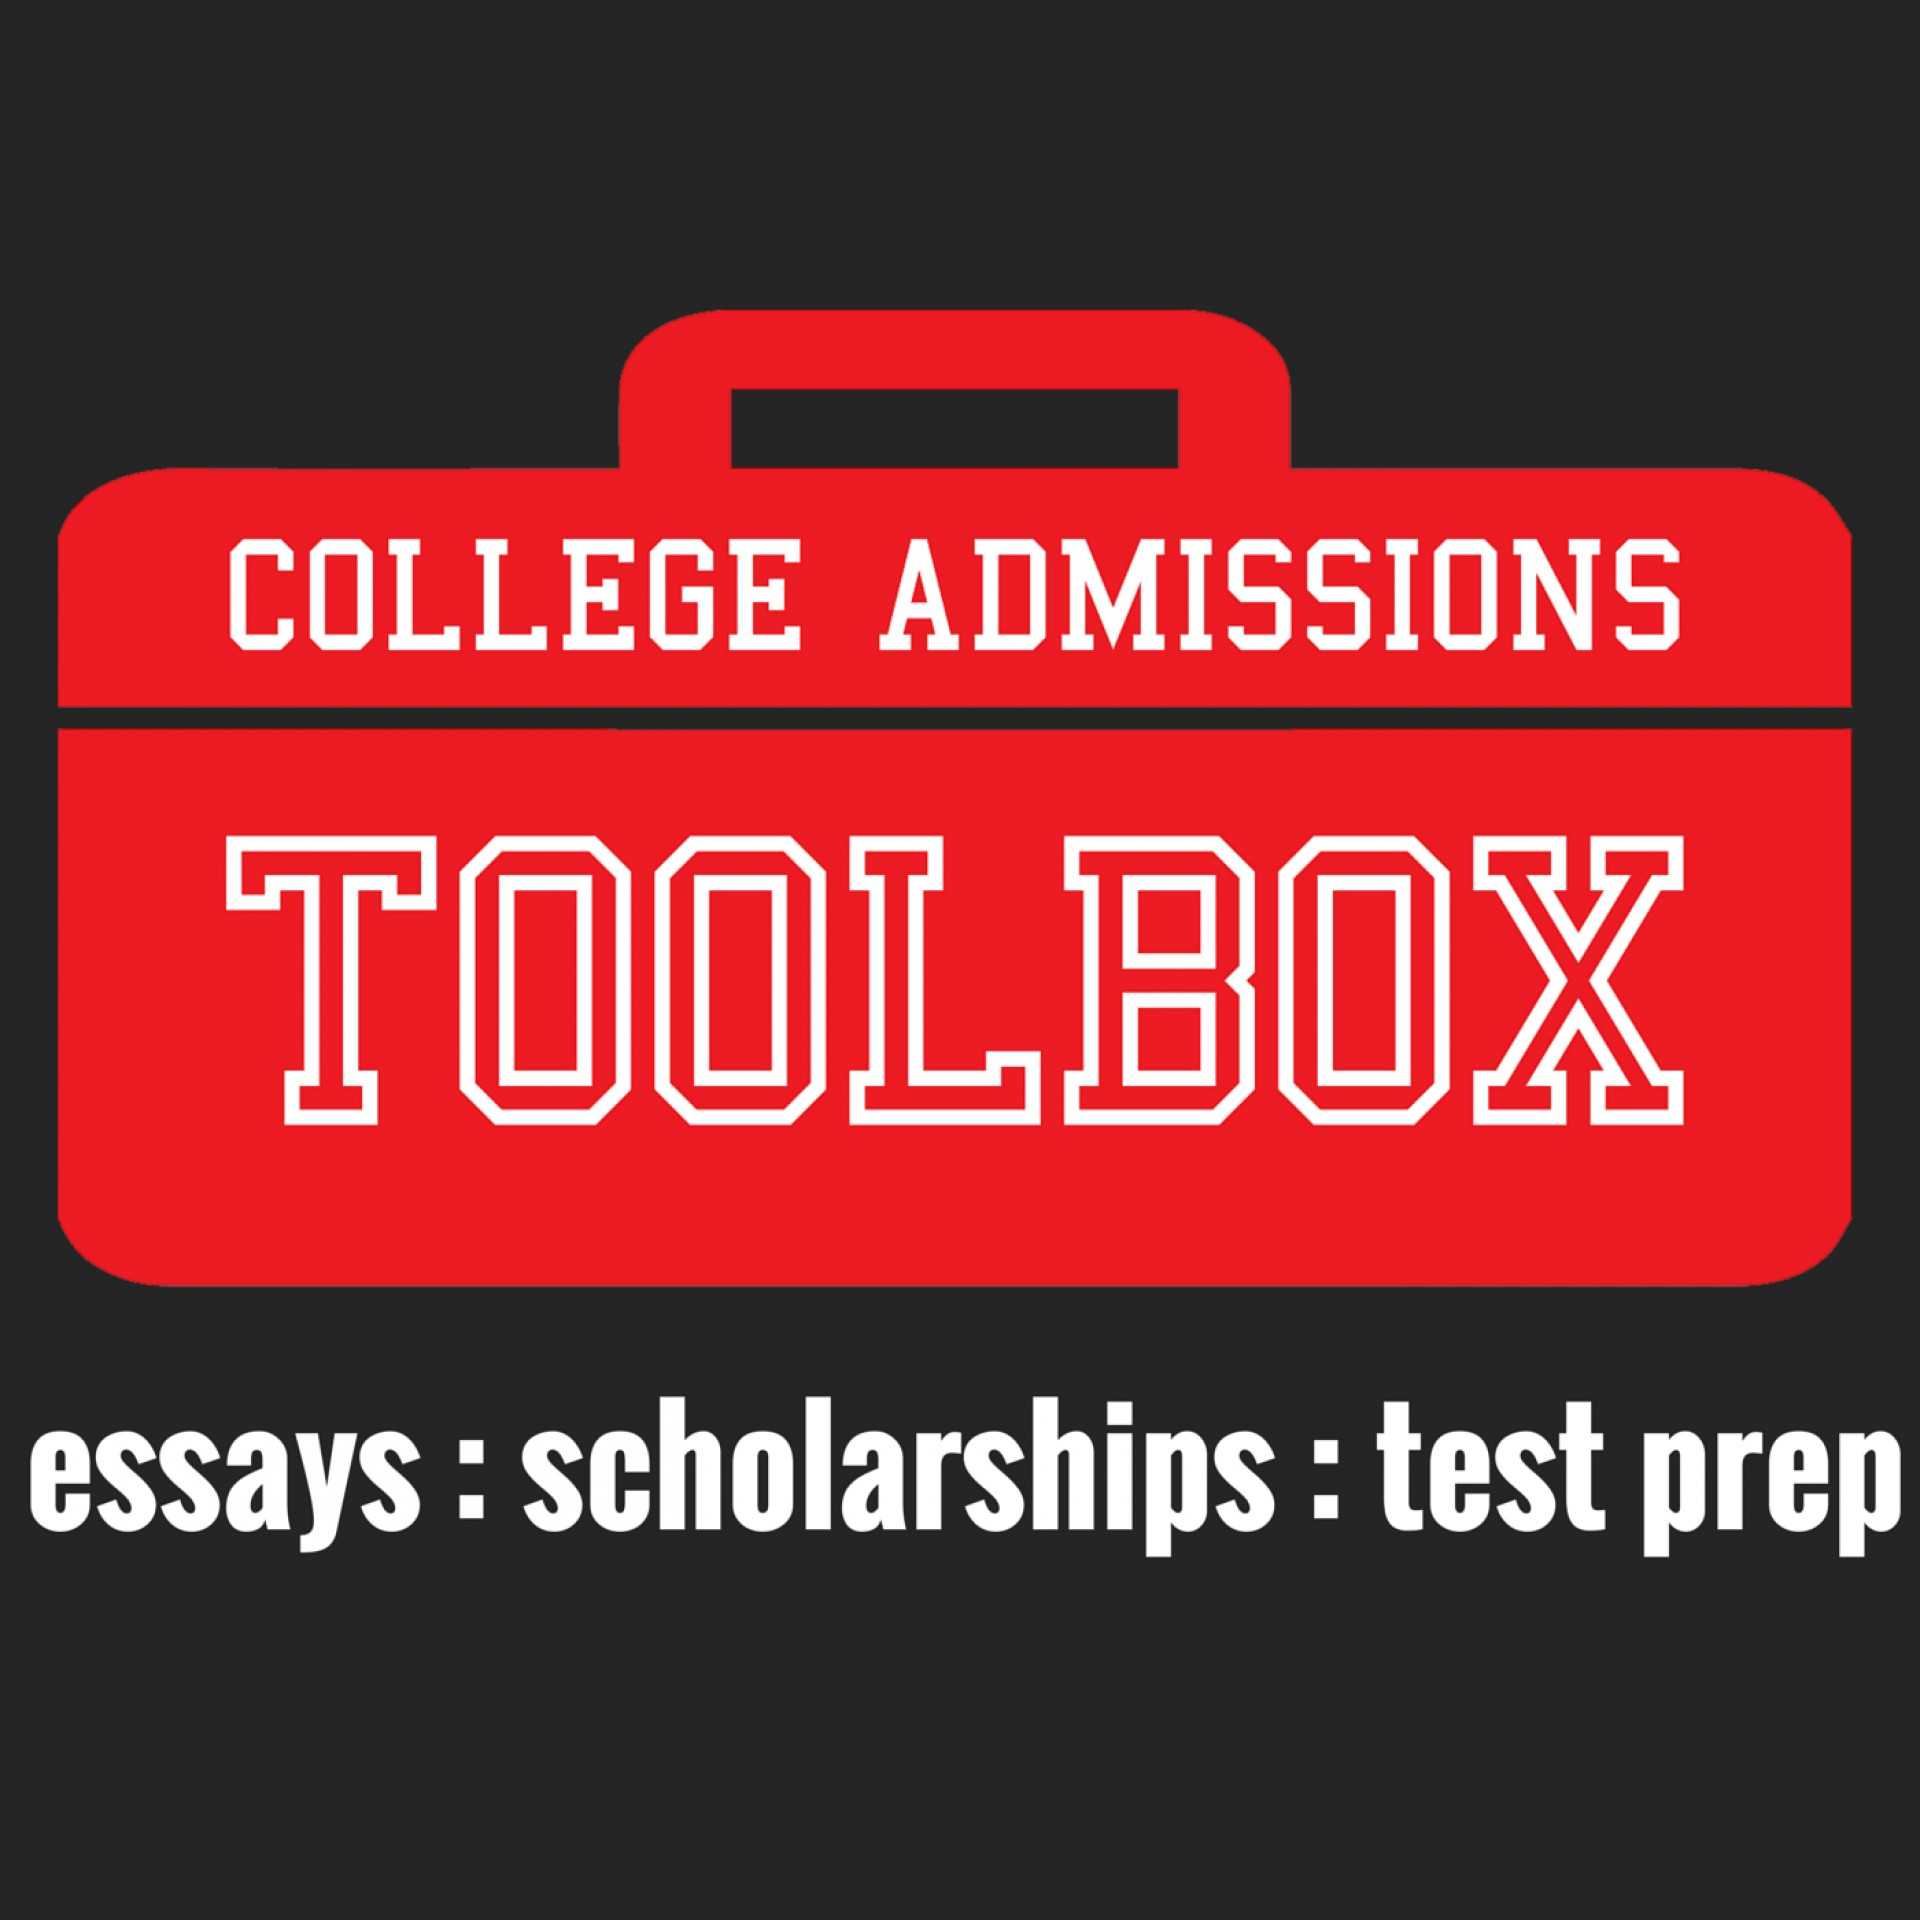 006 College Essay Advisors Example The Admissions Toolbox Podcast Applications Essays Review To Wondrous Upenn Duke Usc 1920